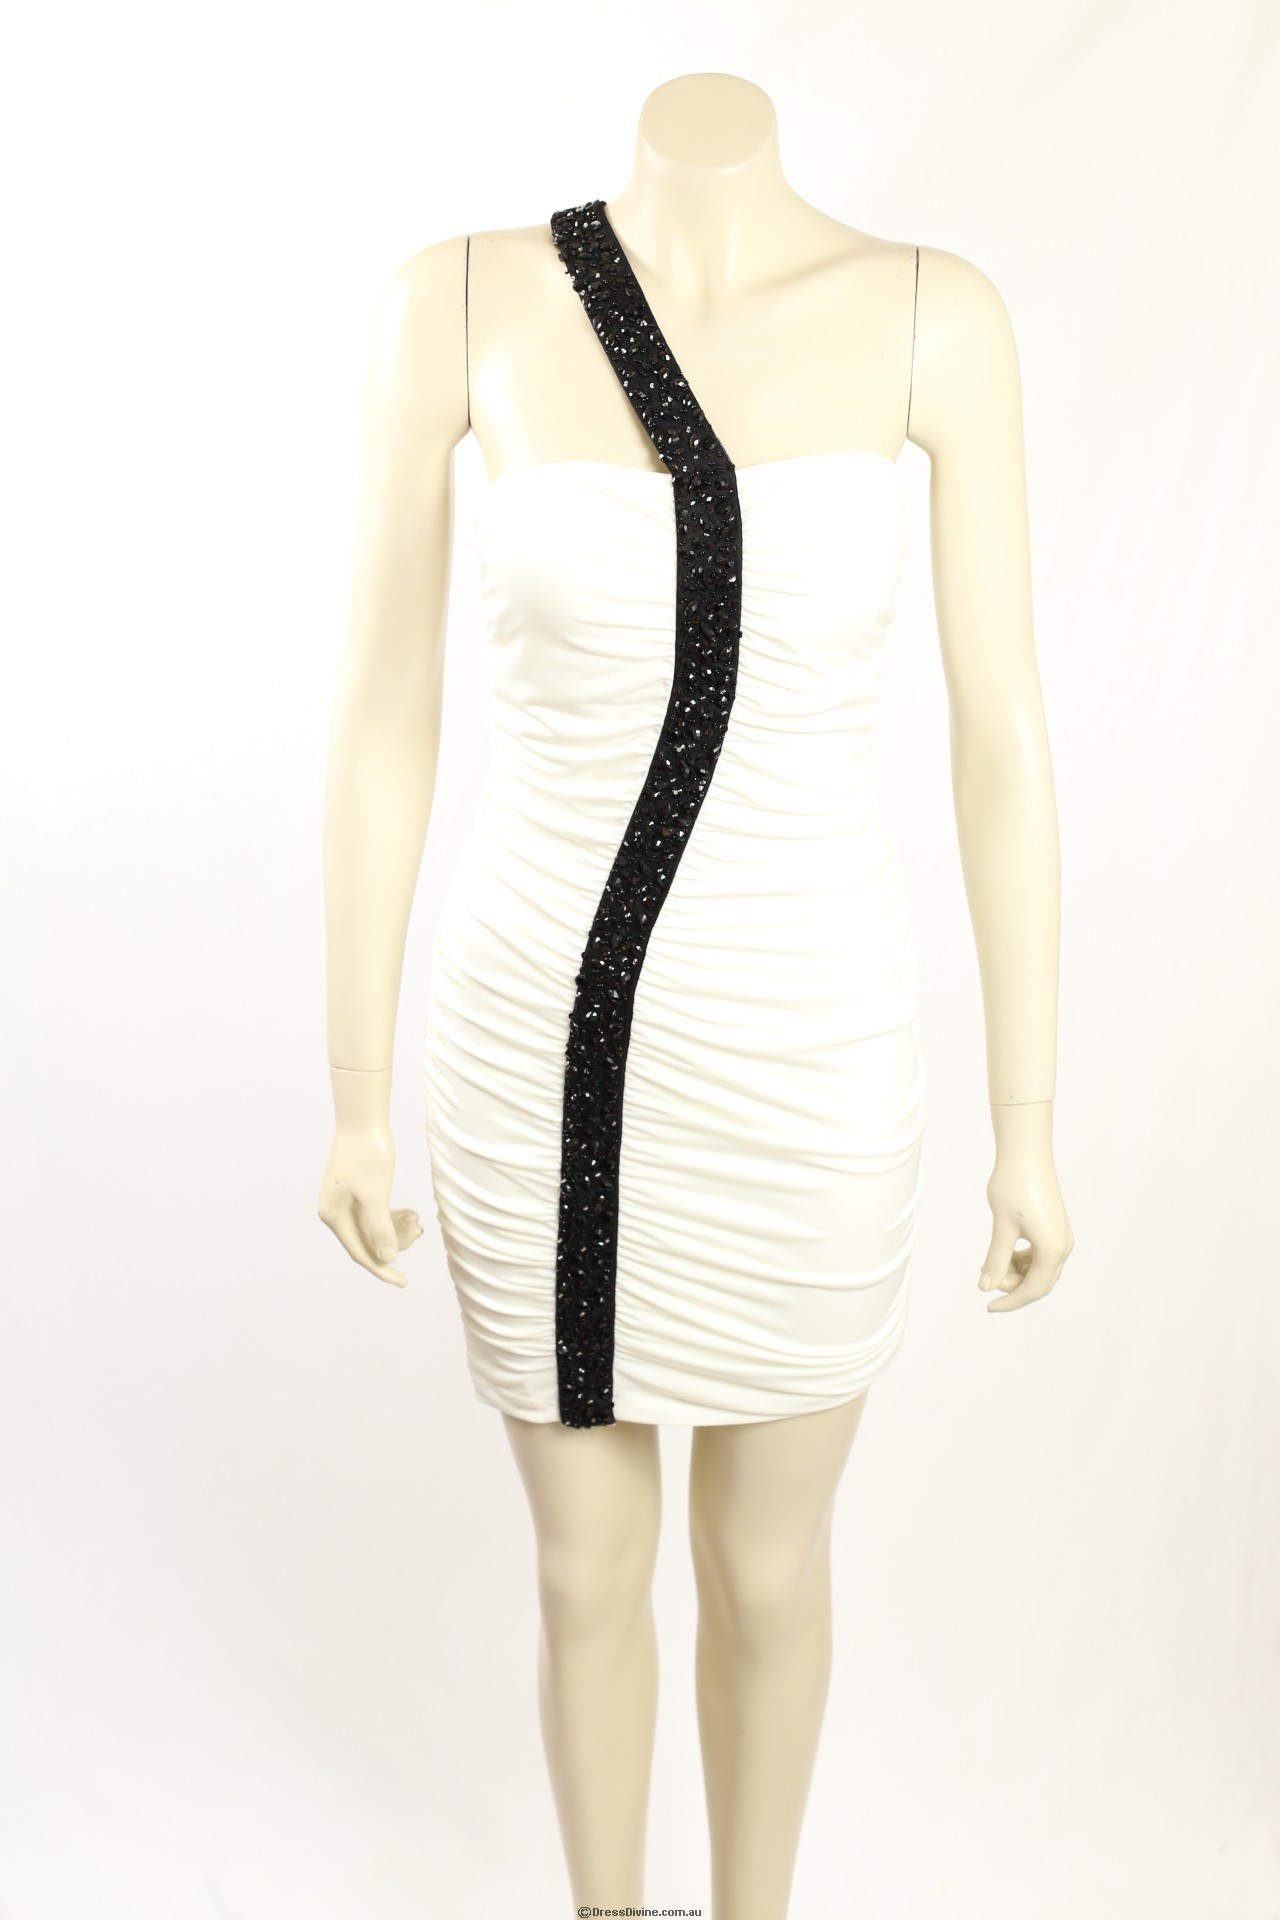 Guess -Size 10- White Party dress with Black Sequins